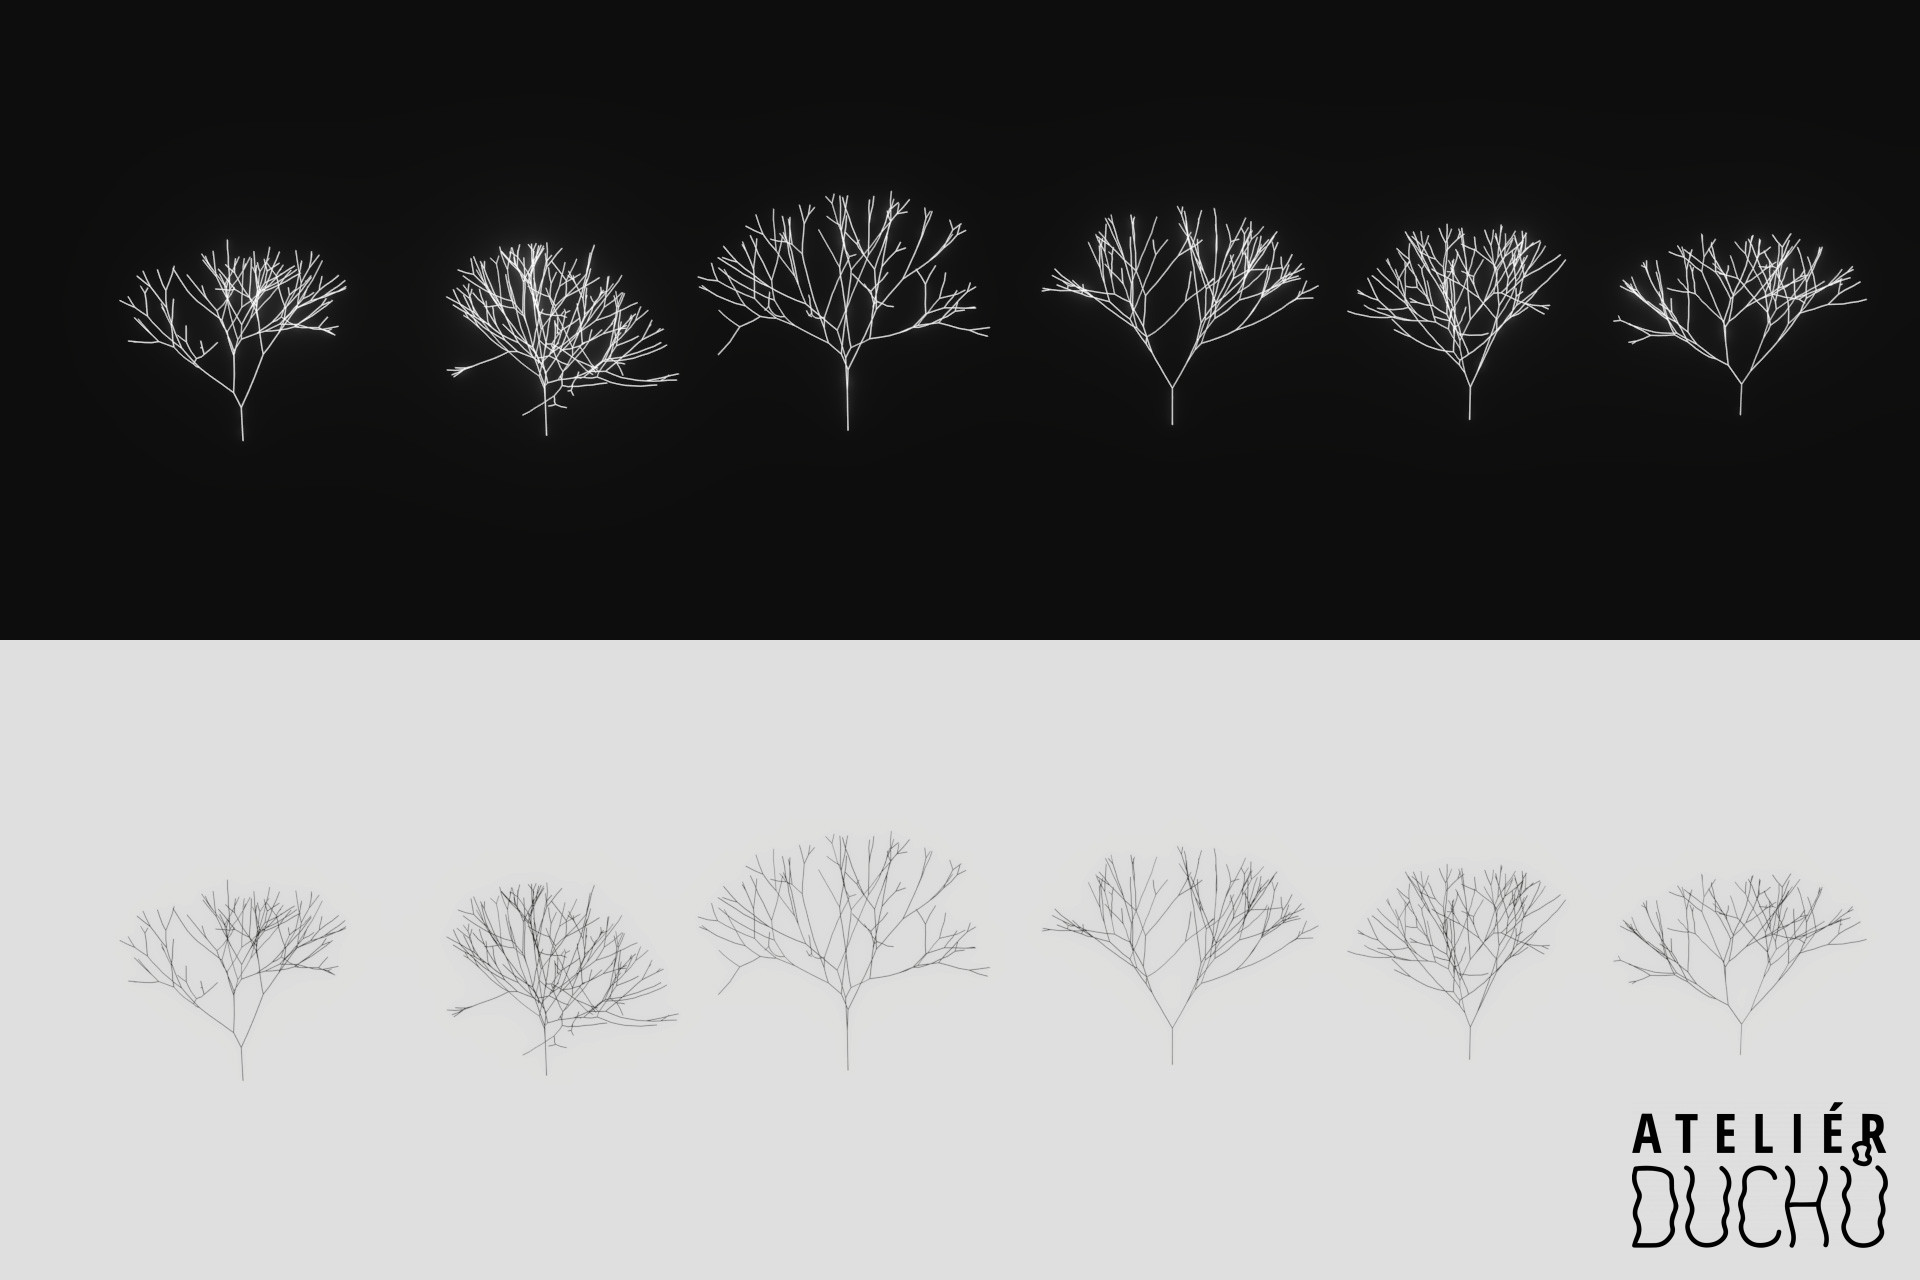 First tree assets created with Sapling Generator in Blender